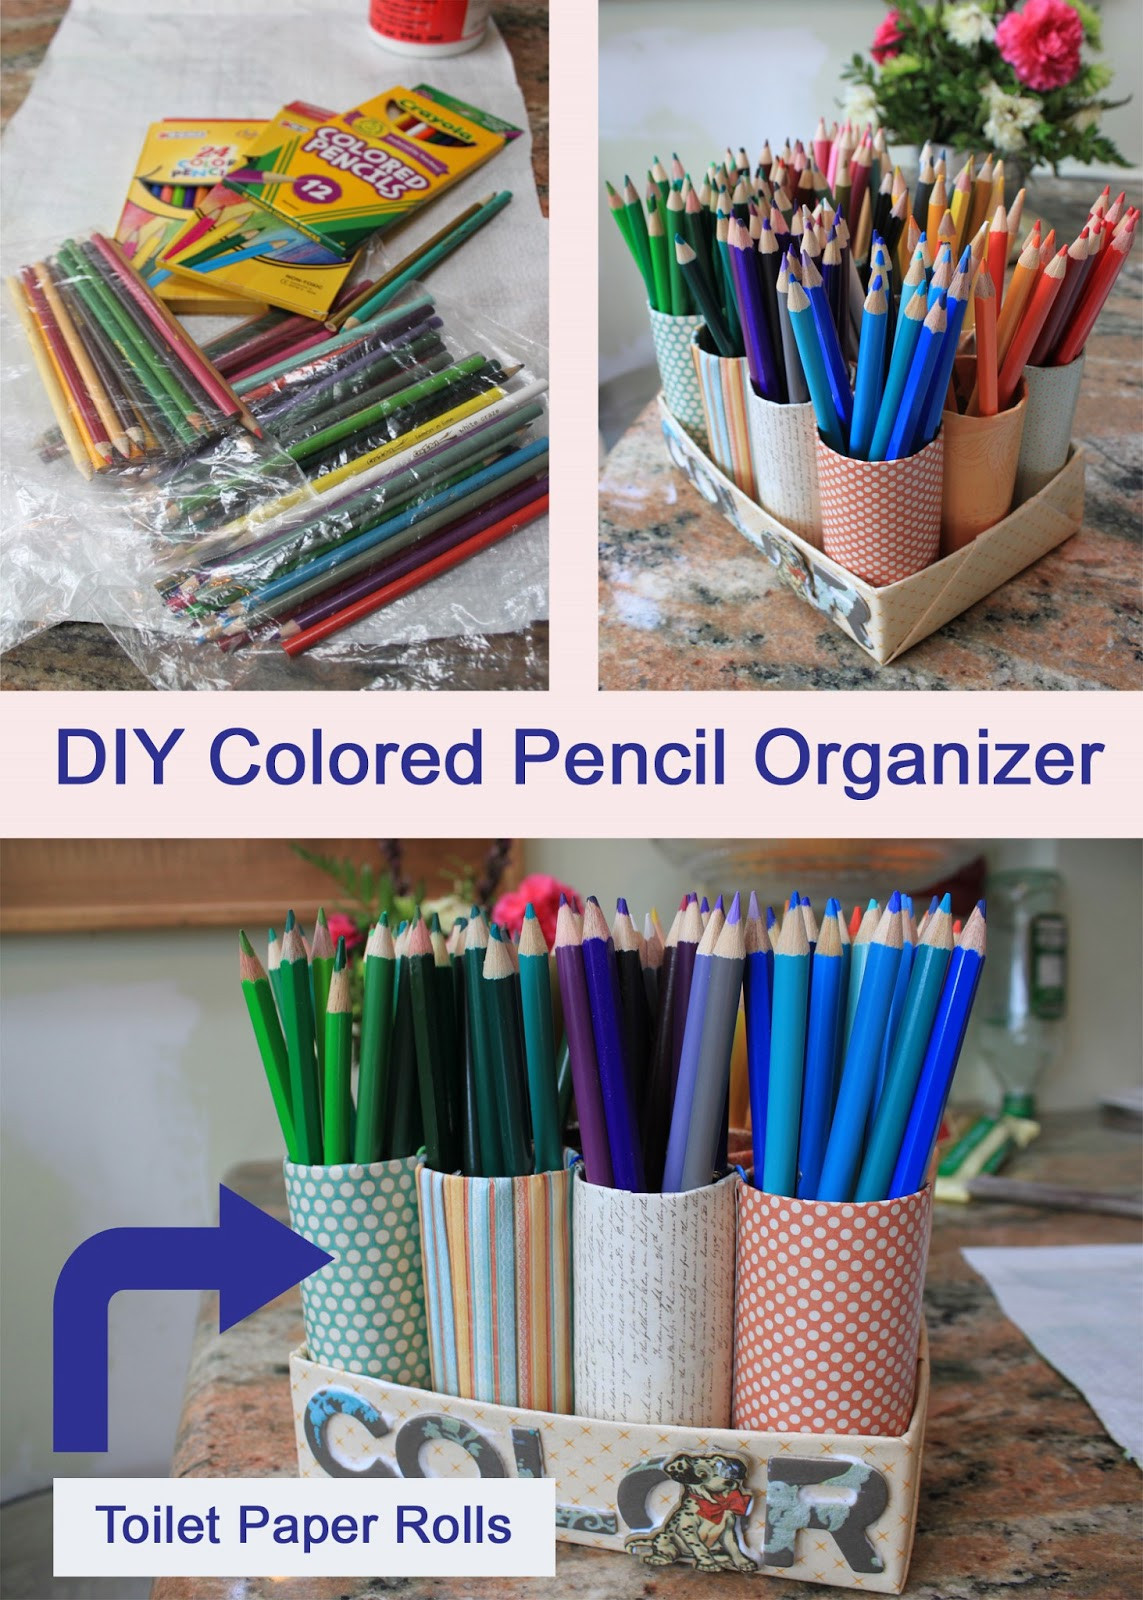 Best ideas about DIY Pencil Organizer . Save or Pin My Great Challenge DIY Colored Pencil Organizer Now.